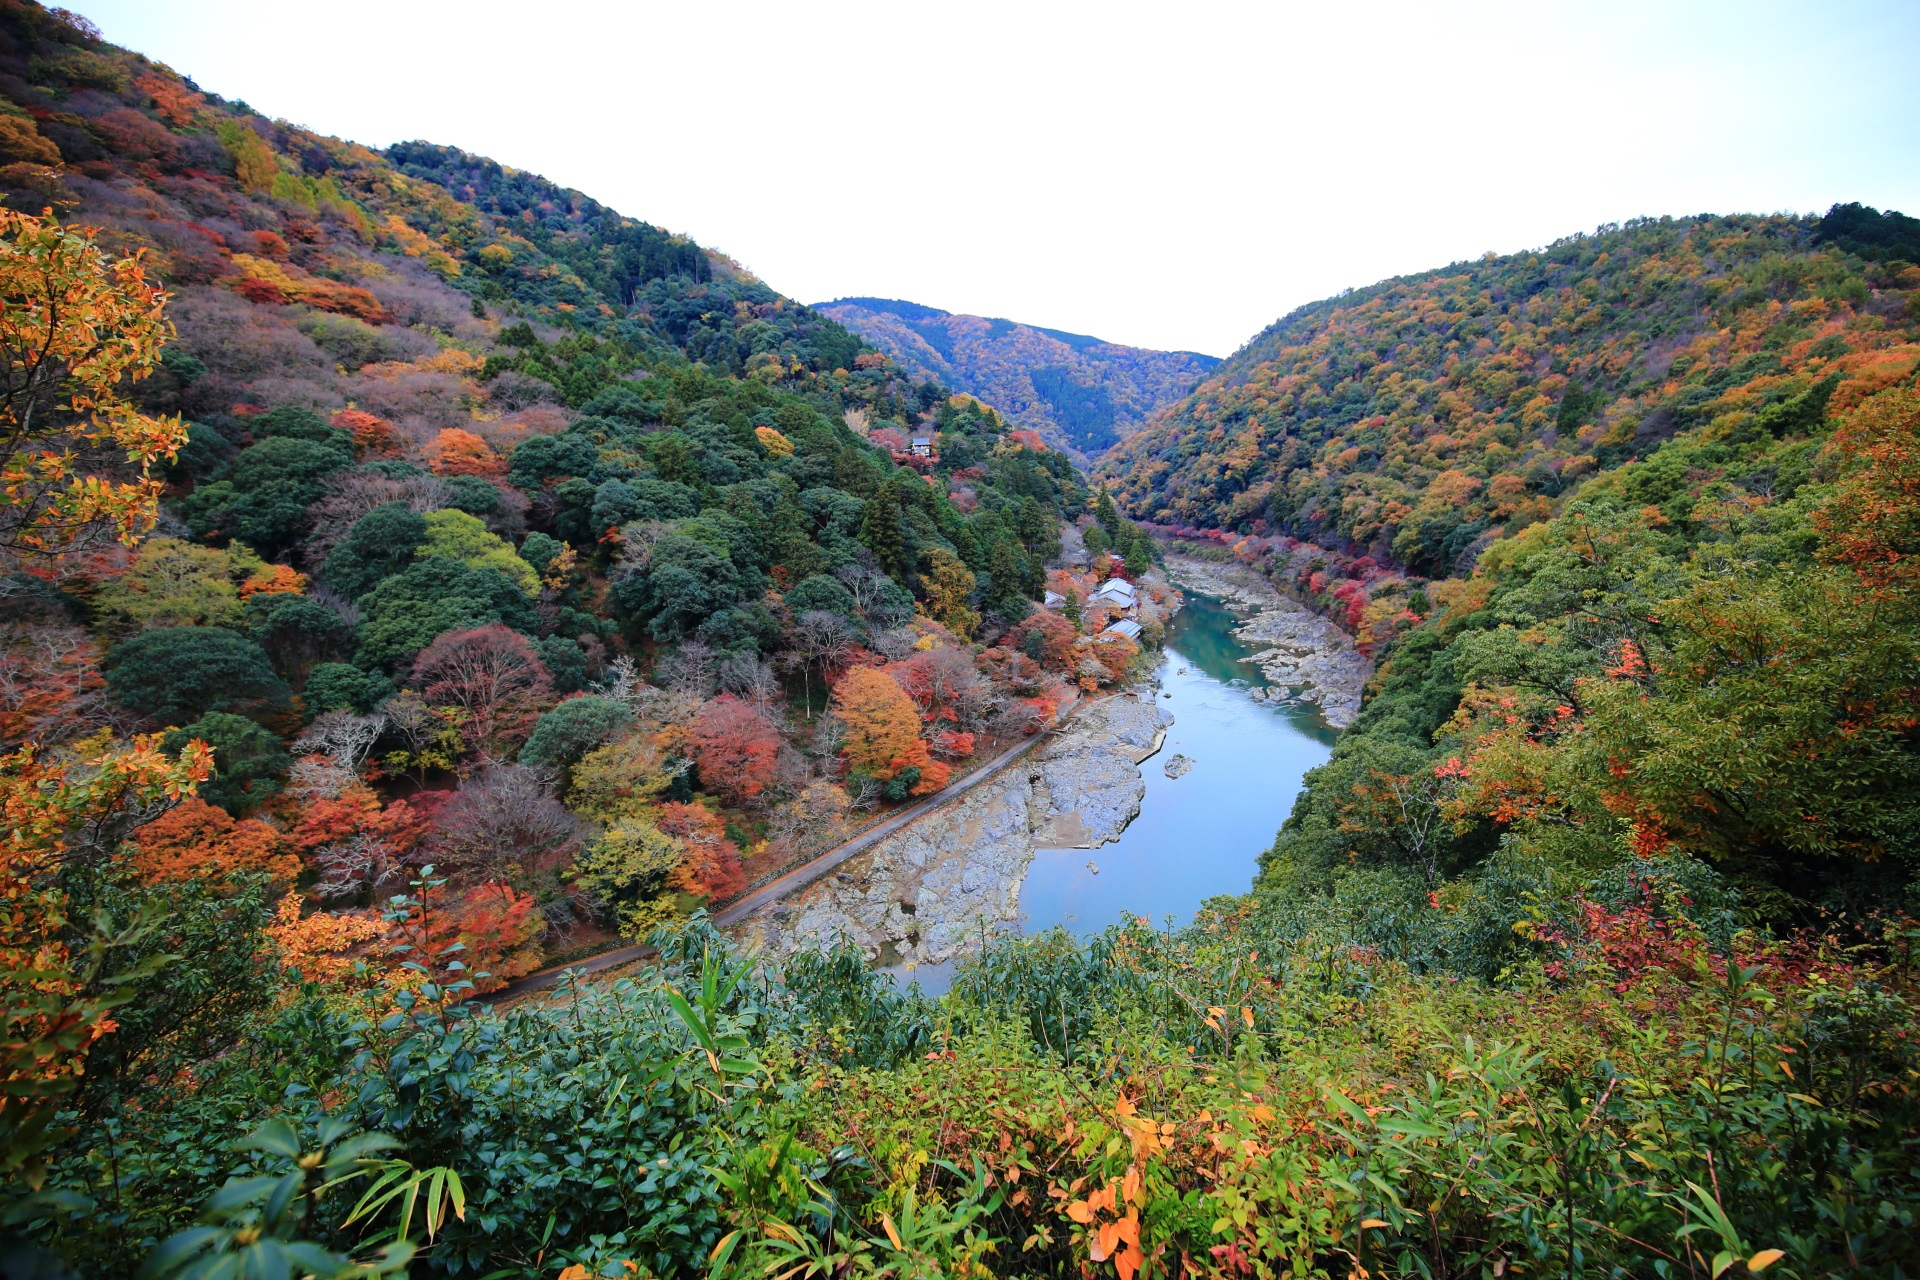 Kyoto Arashiyama Kameyama autumn leaves